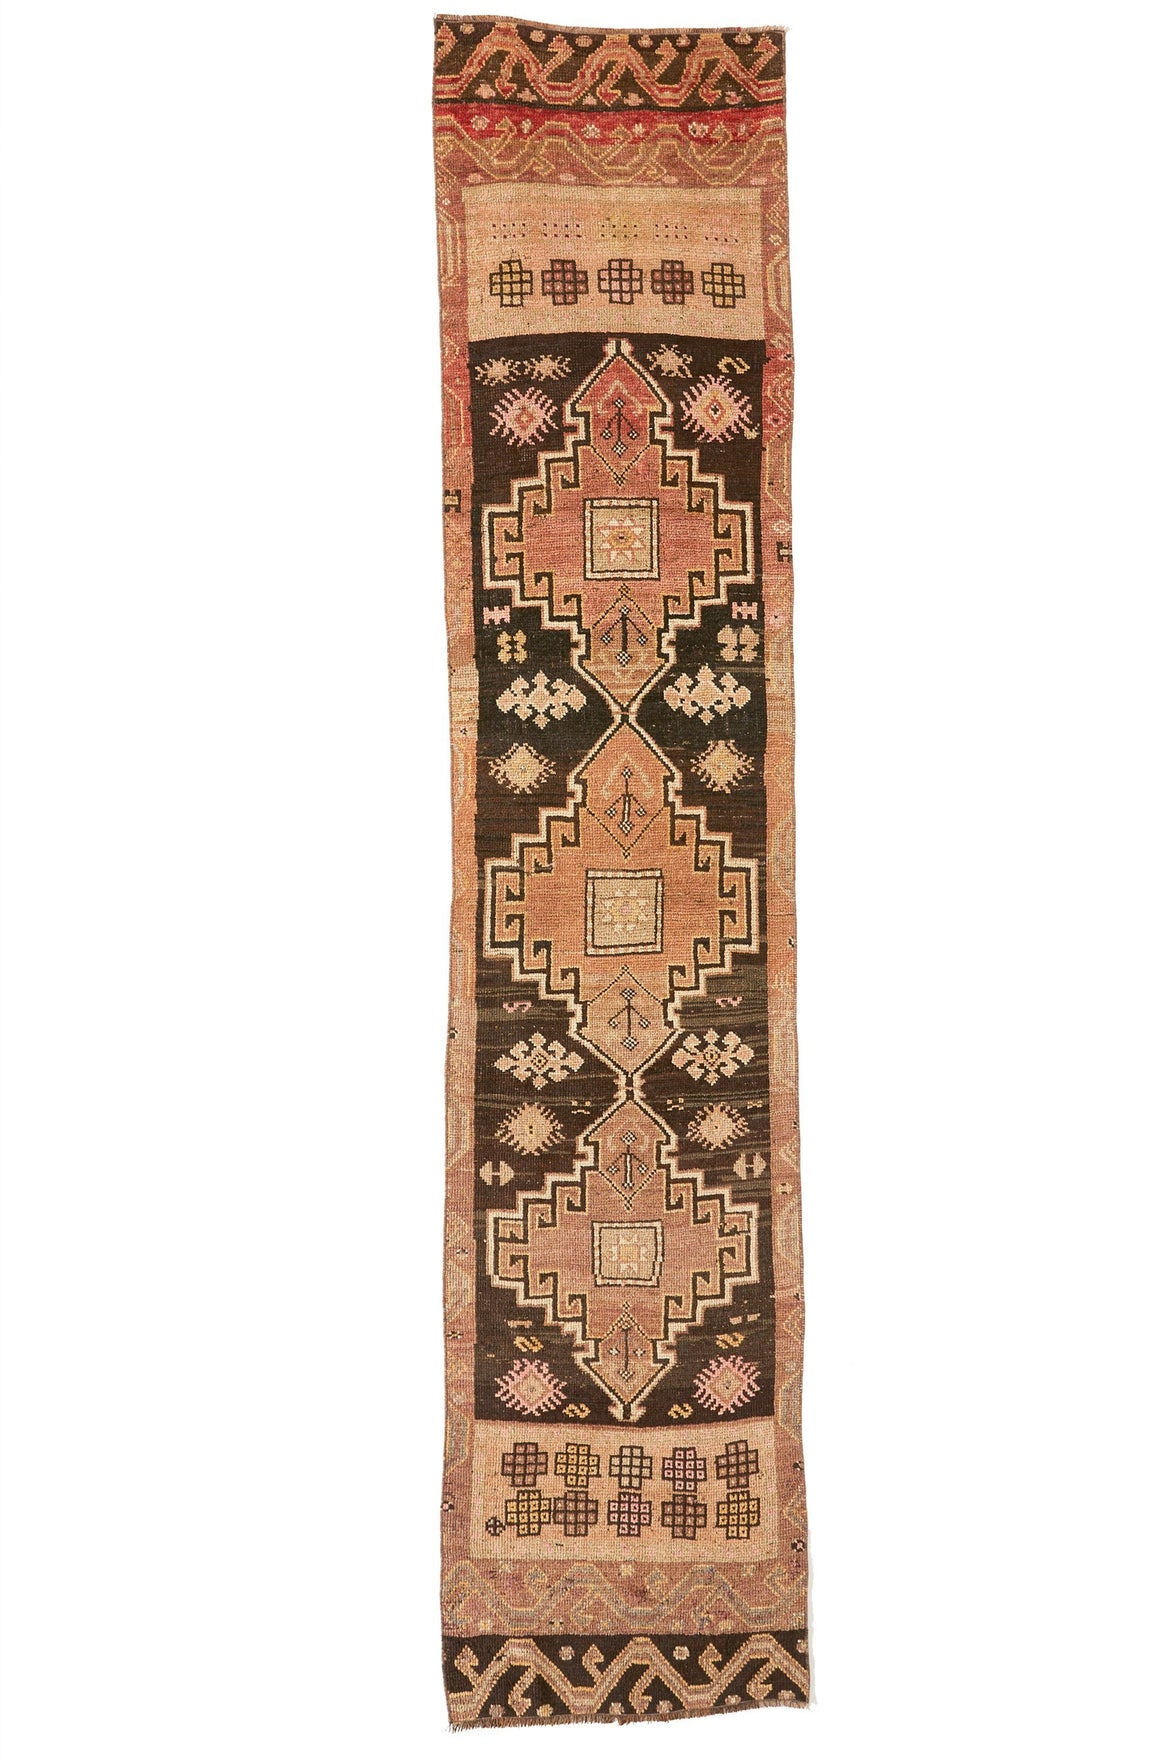 'RR-0618-440' Turkish Vintage Runner - 2'3.5'' x 10'6'' - Canary Lane - Curated Textiles